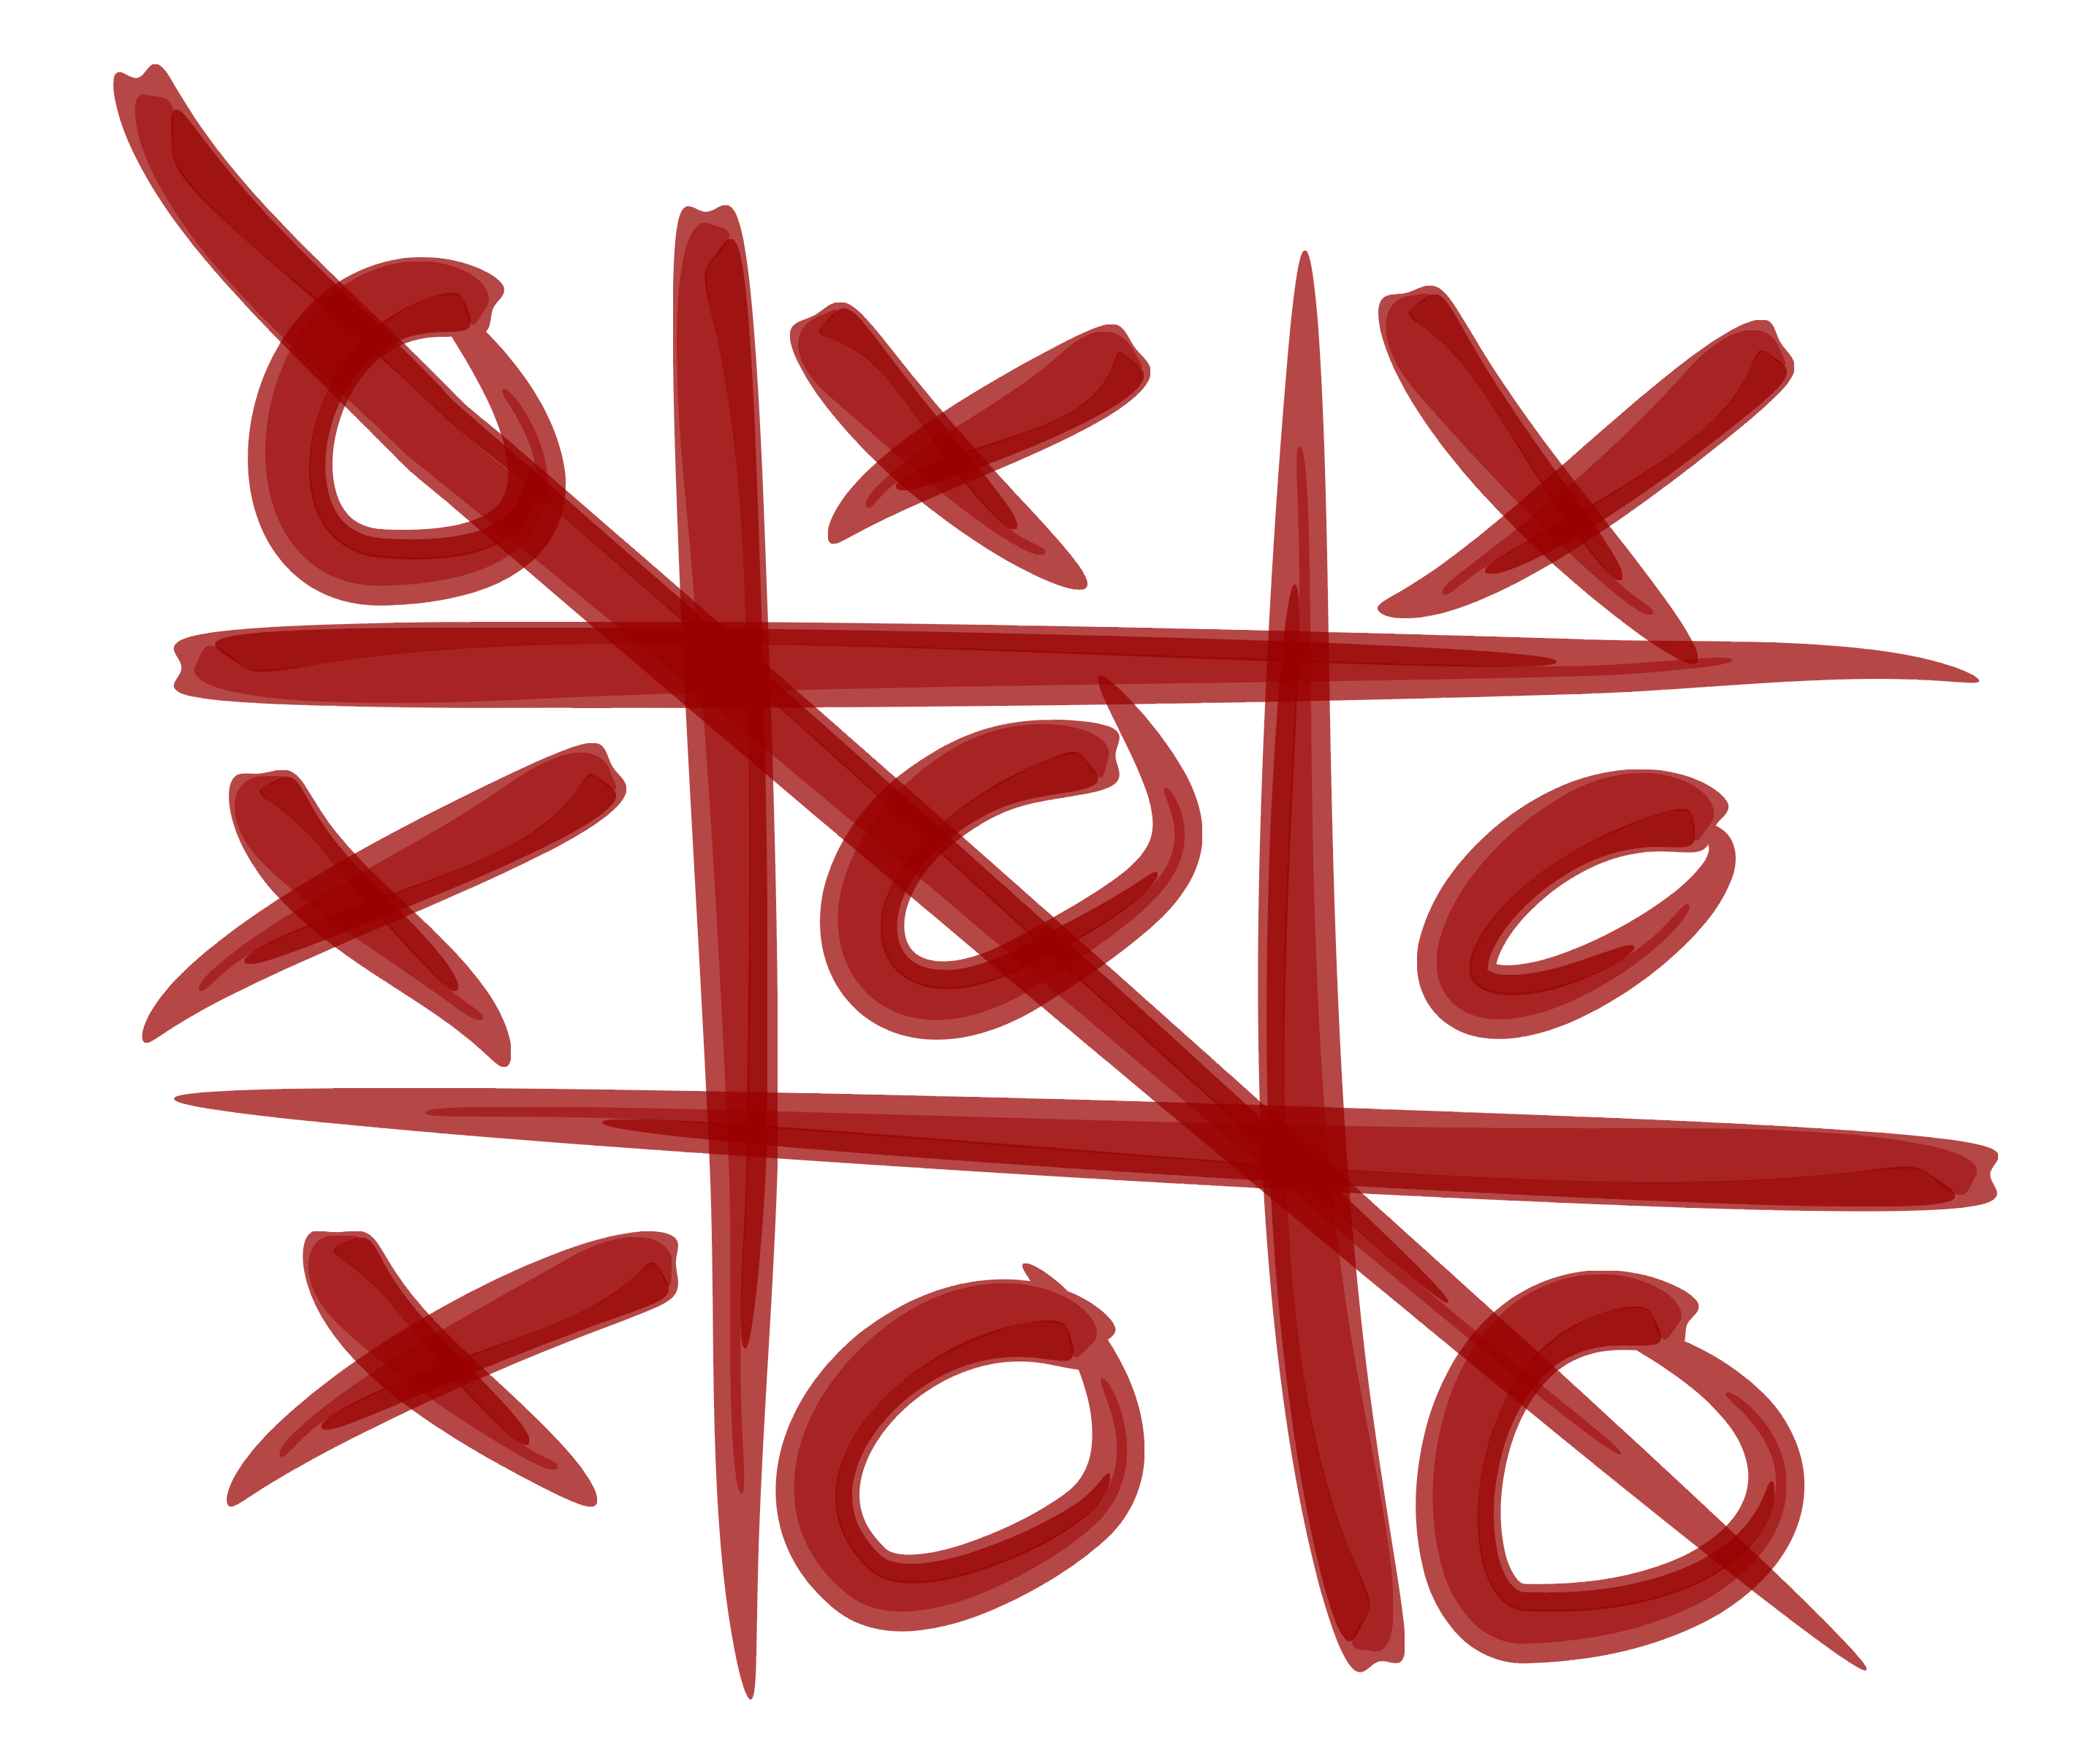 Oldest Tic tac toe on earth (geoglyph) (Human made) - similarity image